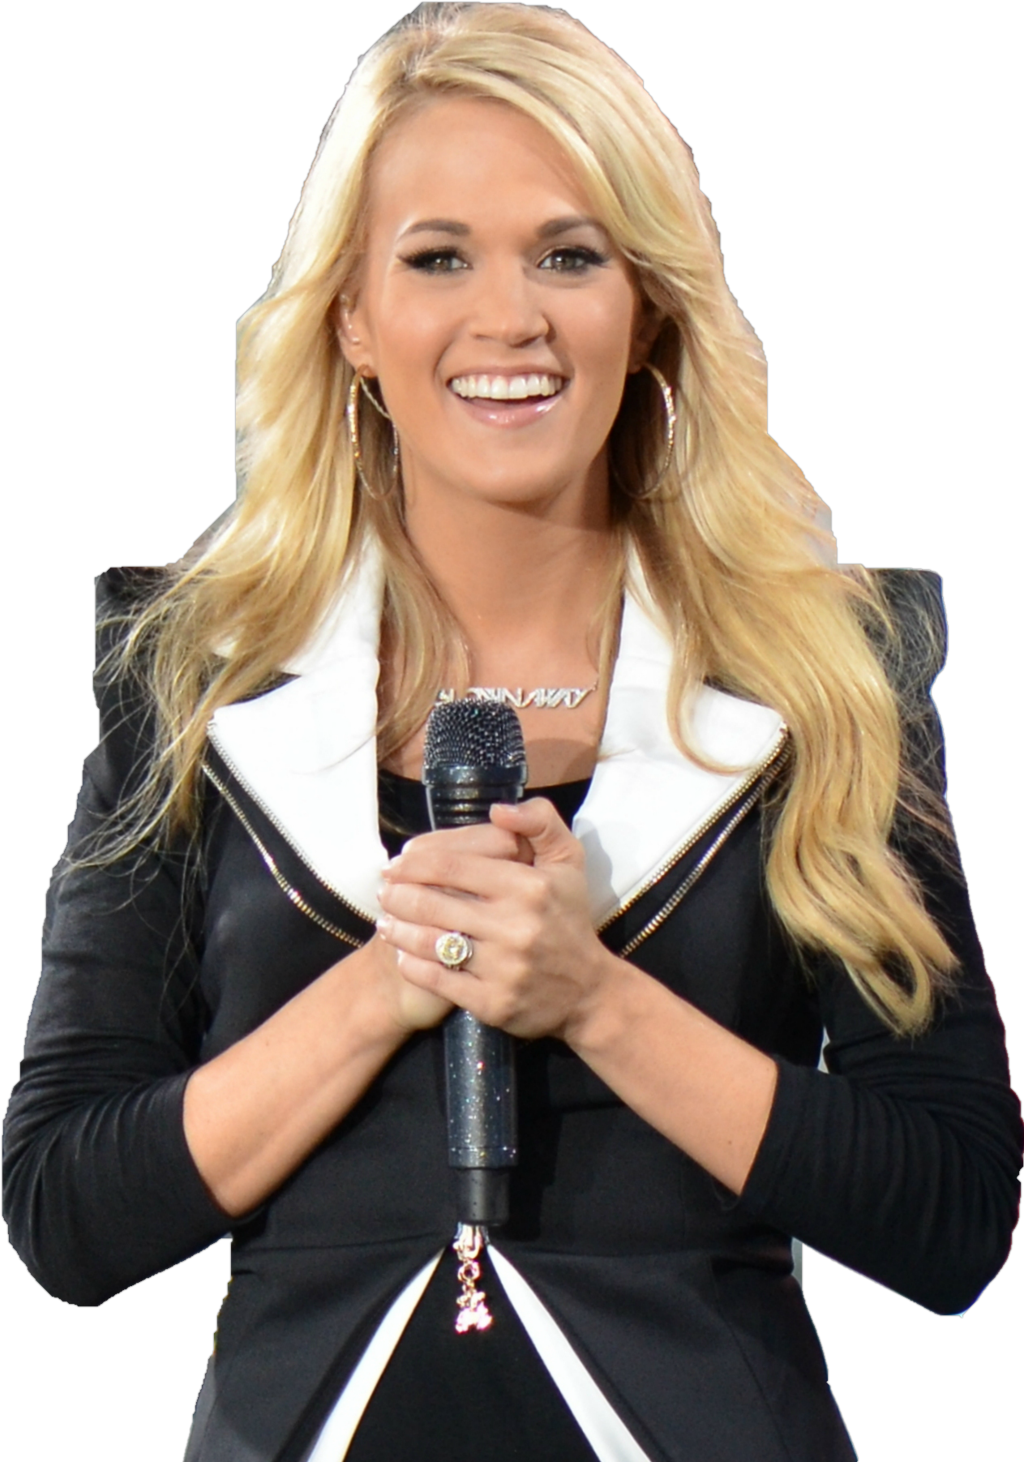 Carrie Underwood Image PNG Image